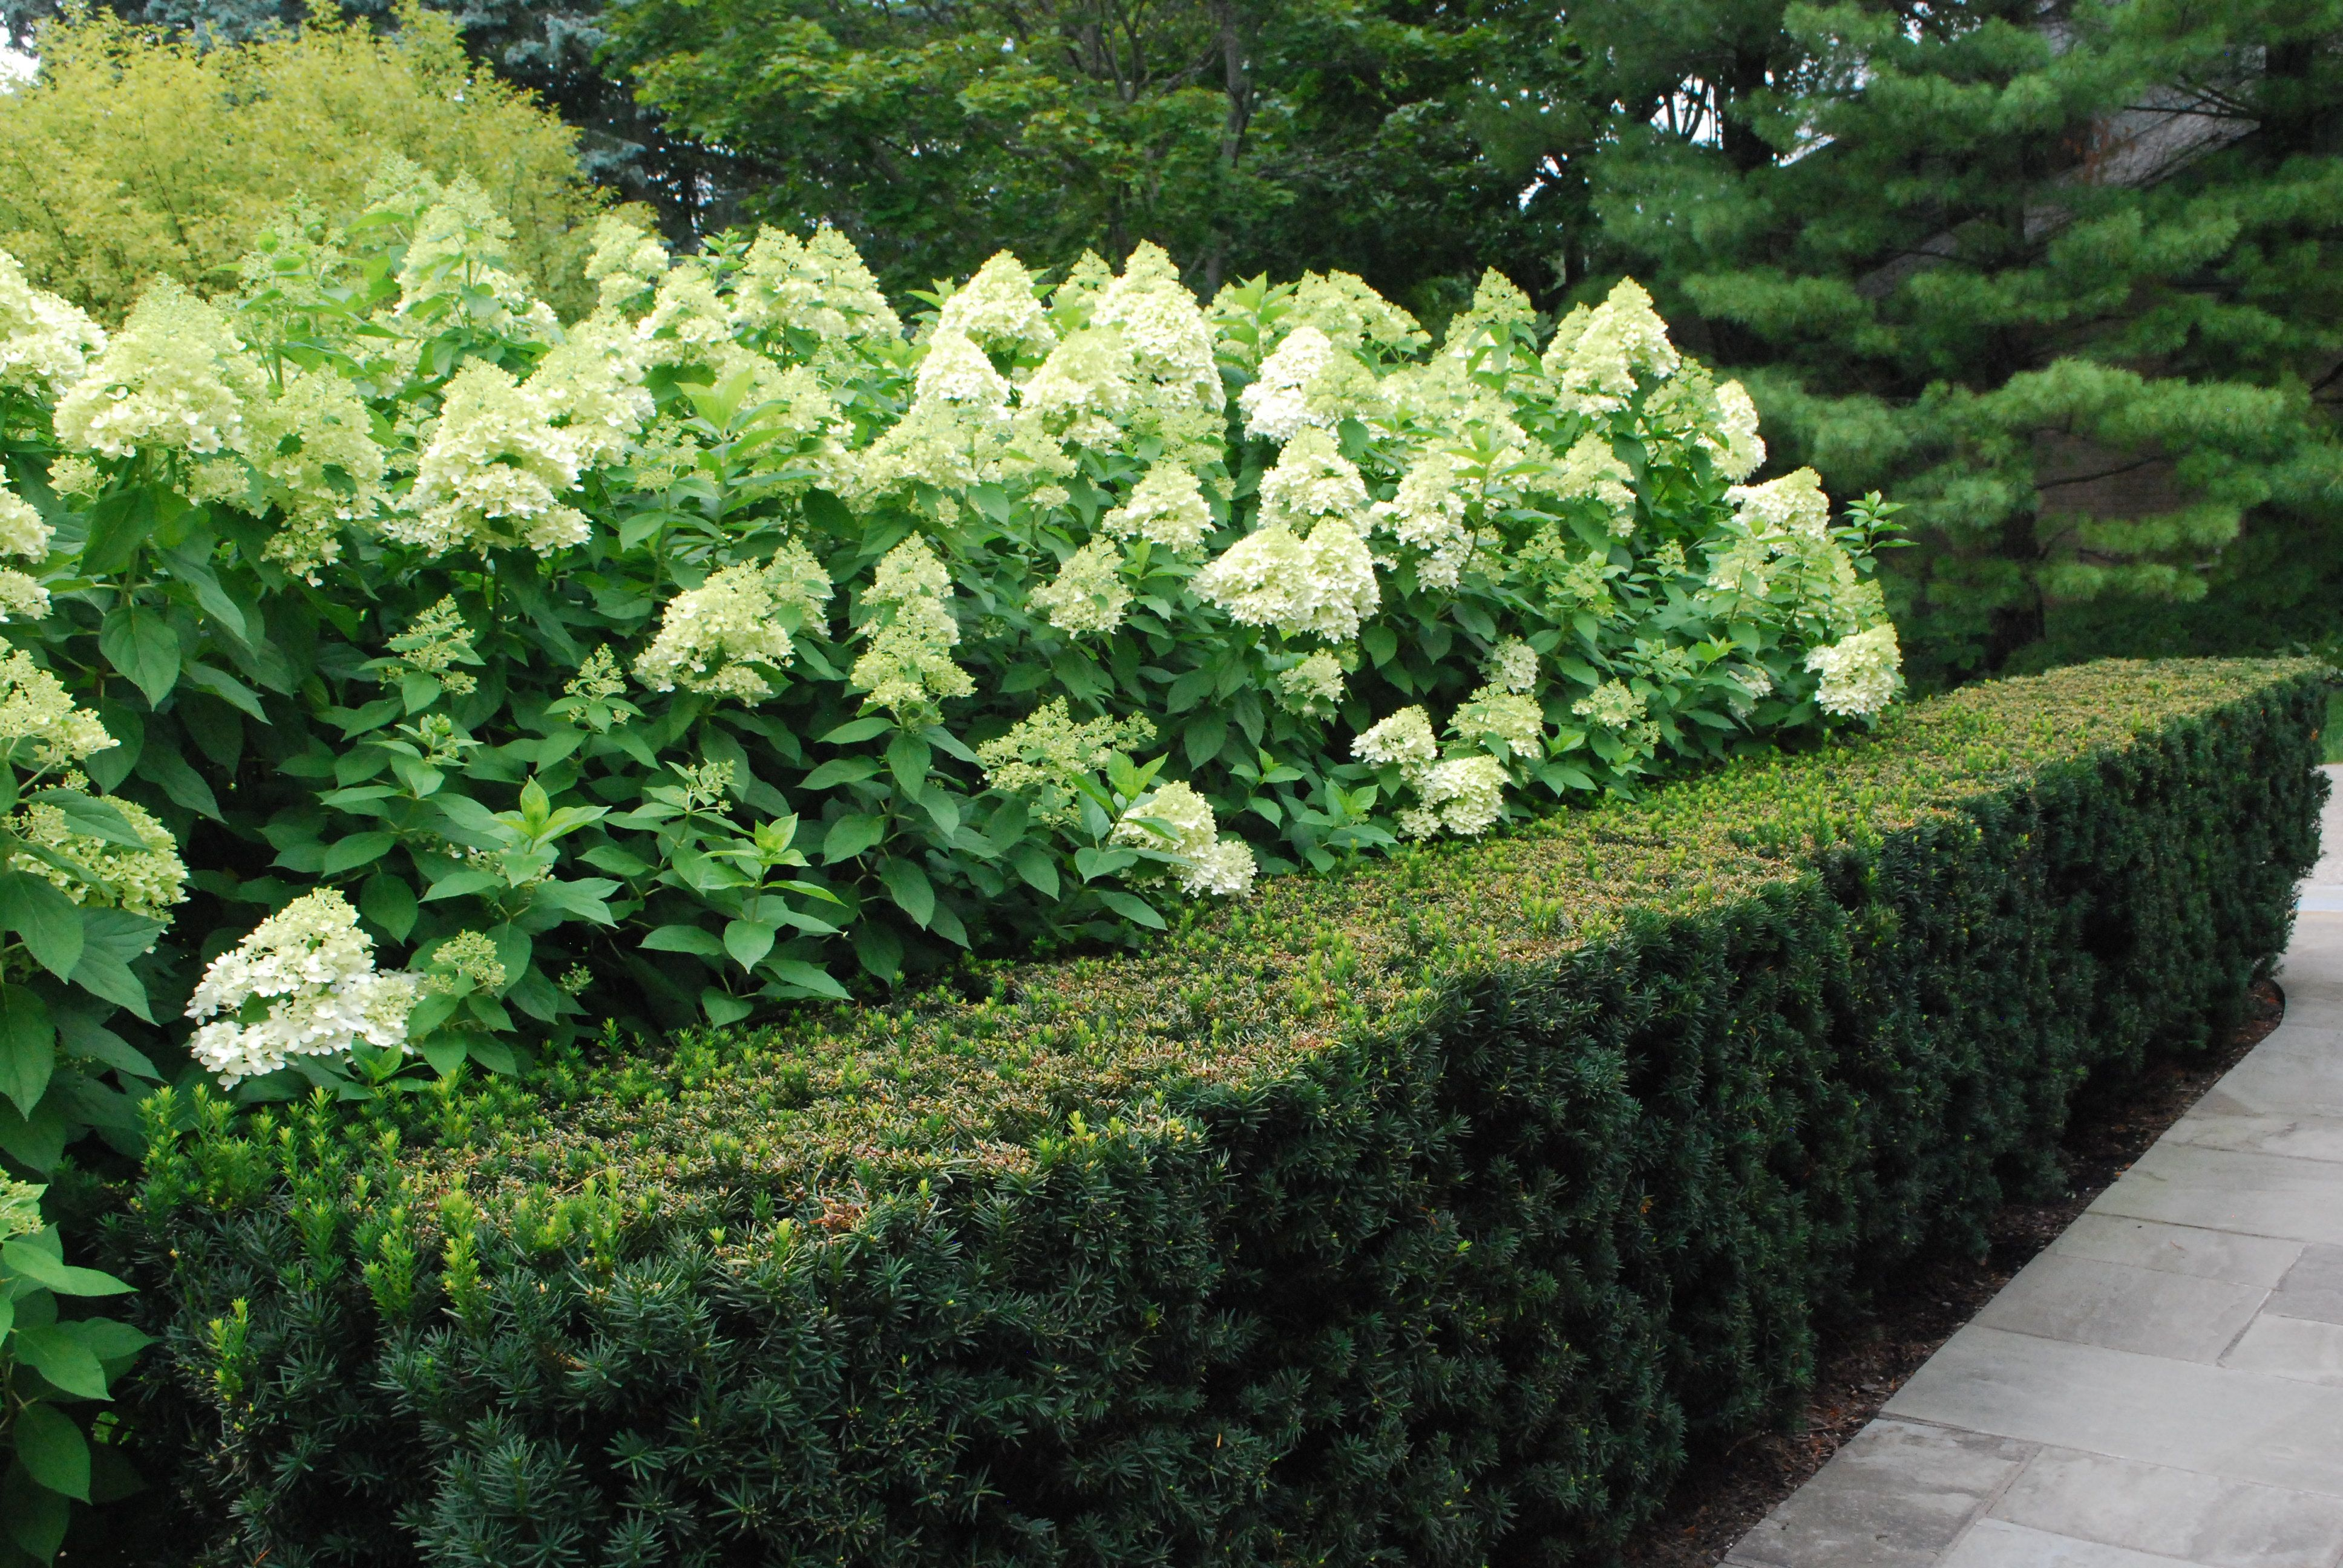 Low Hedge Yew Limelight Hydrangea 566 Planting Limelight Hydrangea Courtyard Landscaping Hedging Plants